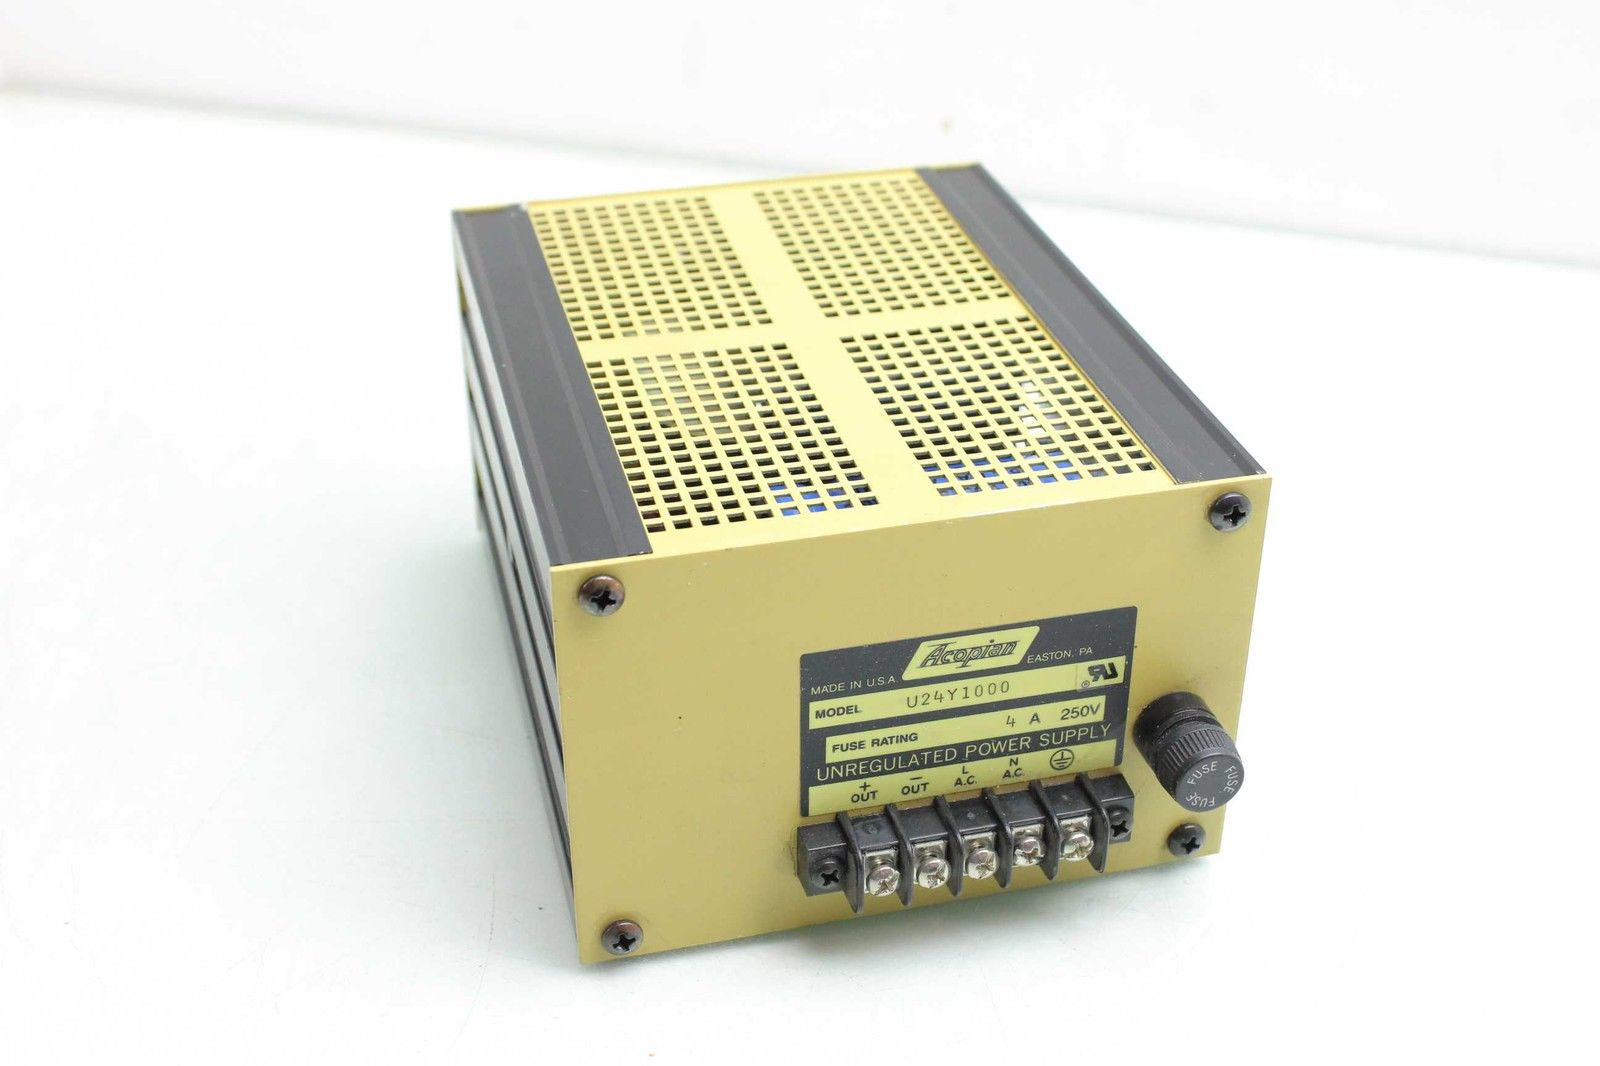 Acopian U24Y1000 Unregulated 24V @ 10A DC Power Supply 250V / 24V DC Out -  Used